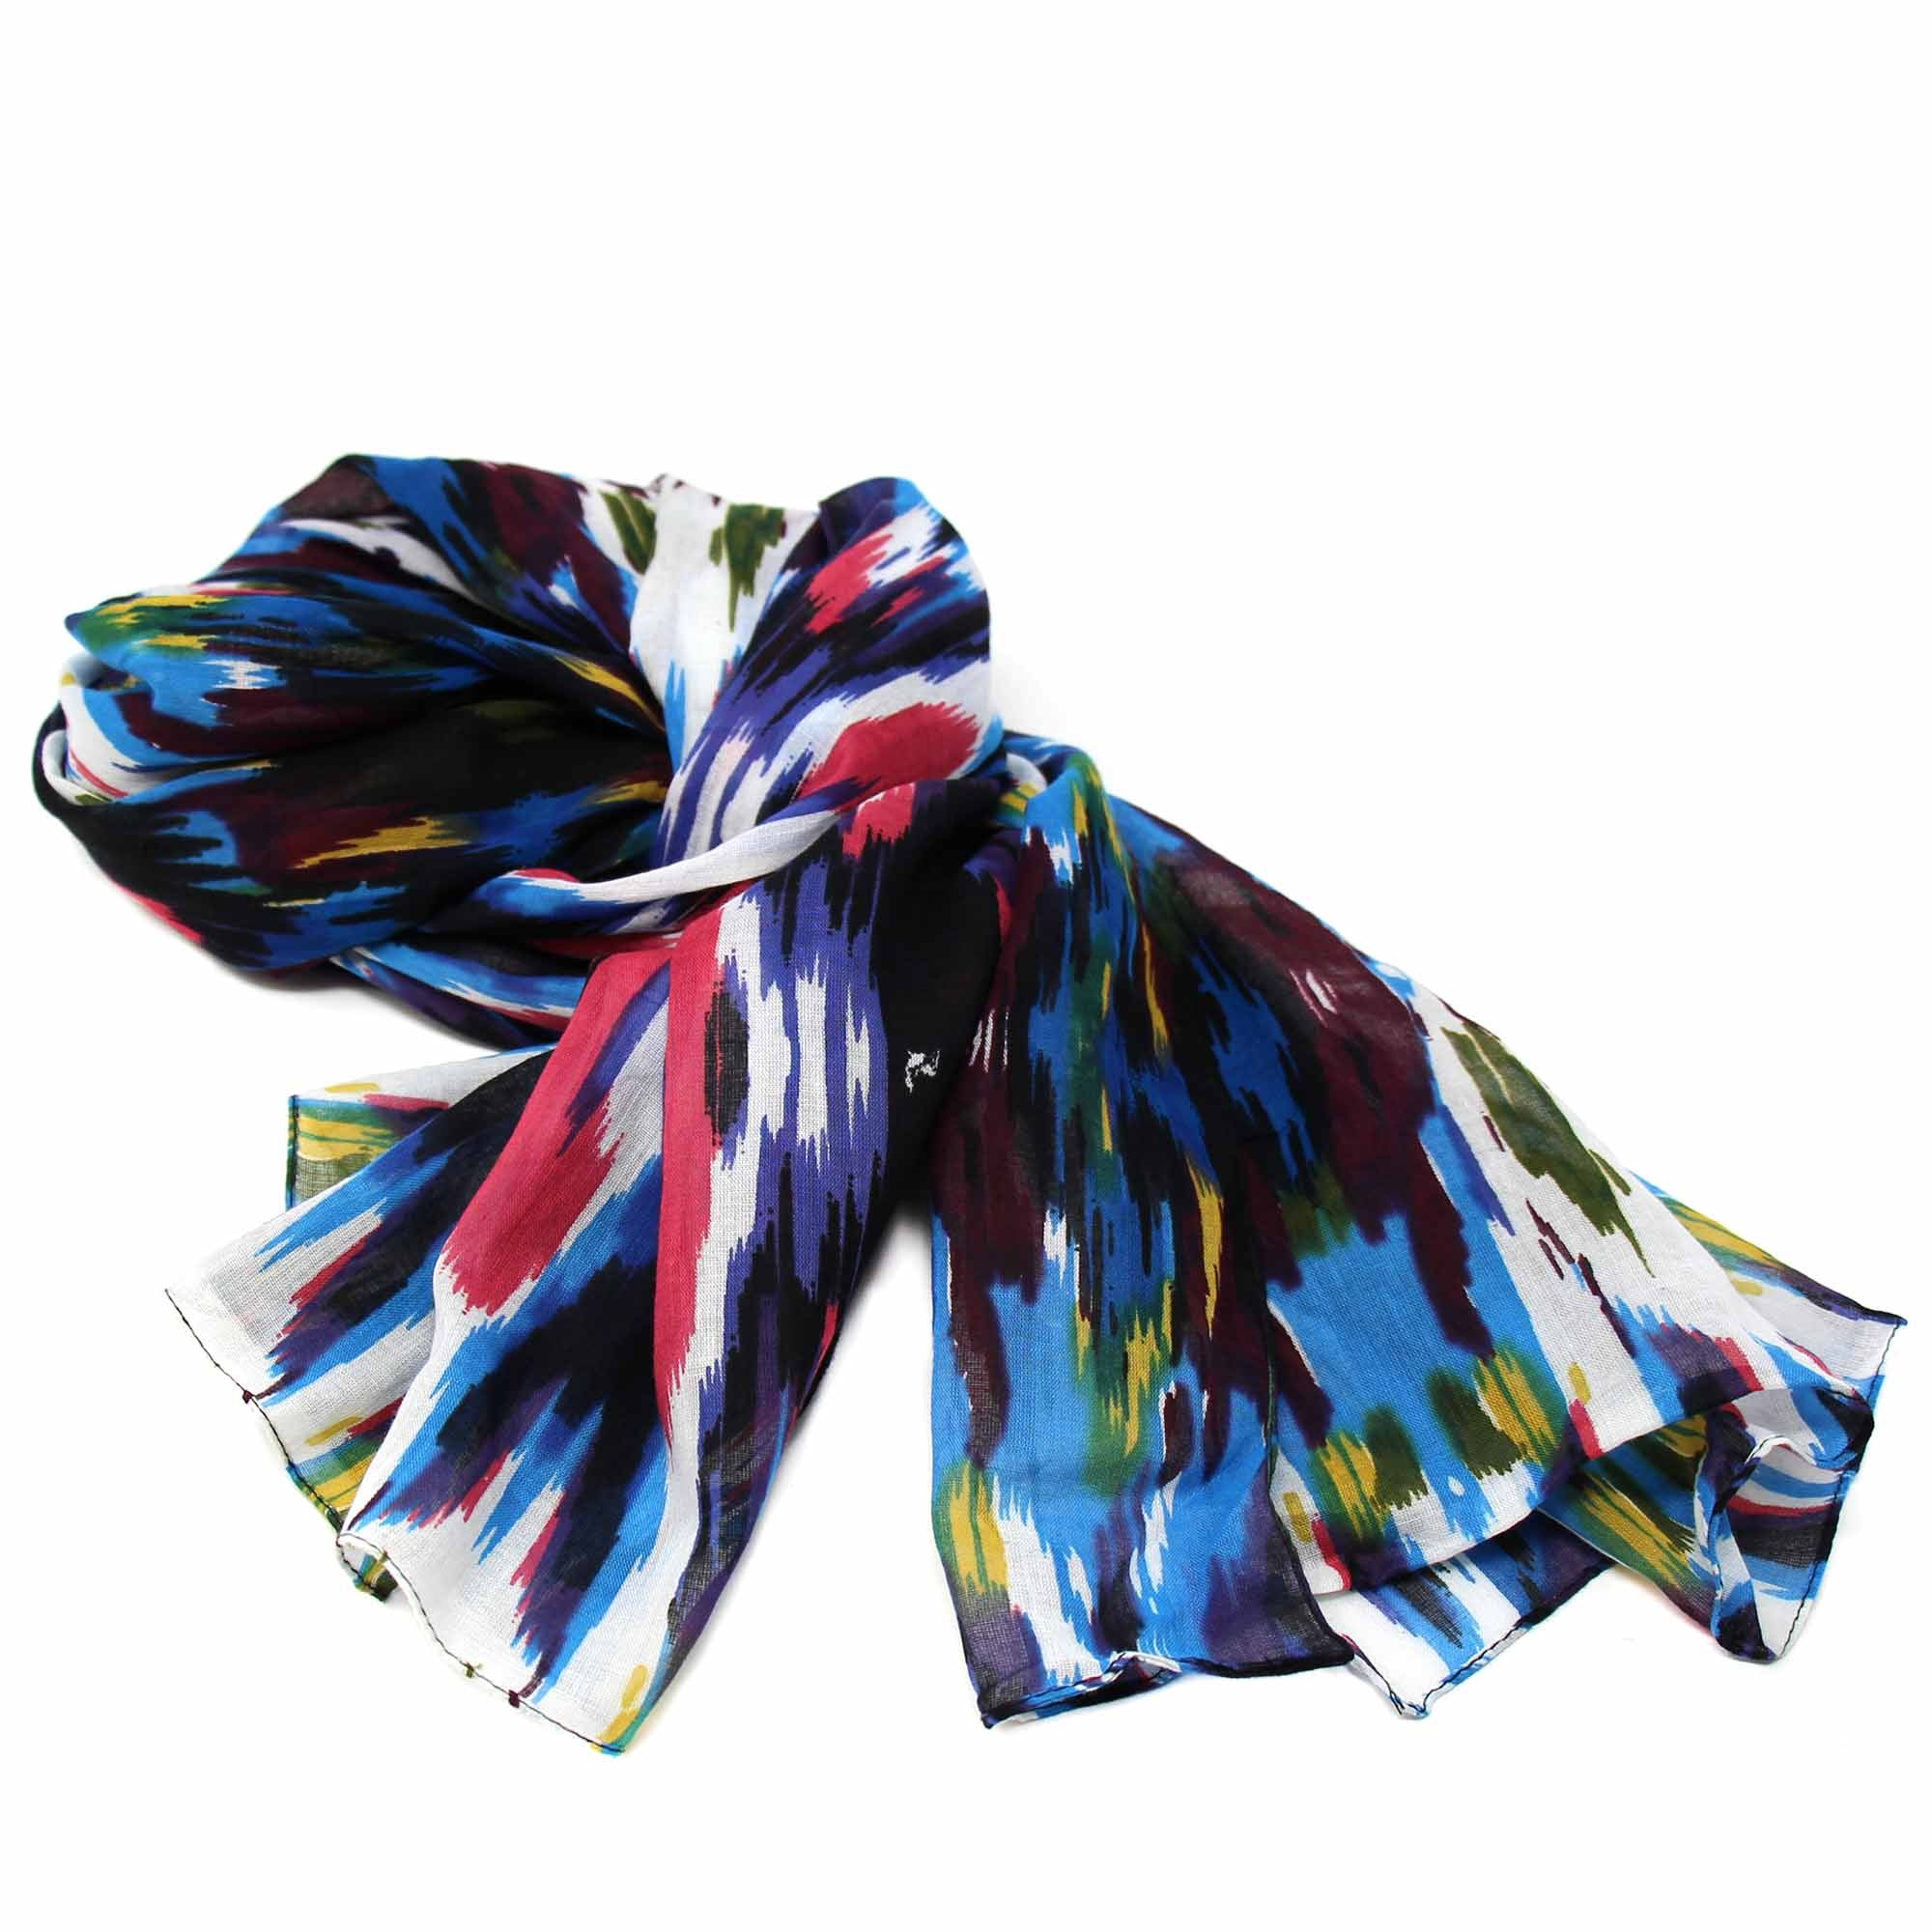 Printed Ikat Multicolor Design Cotton Scarf